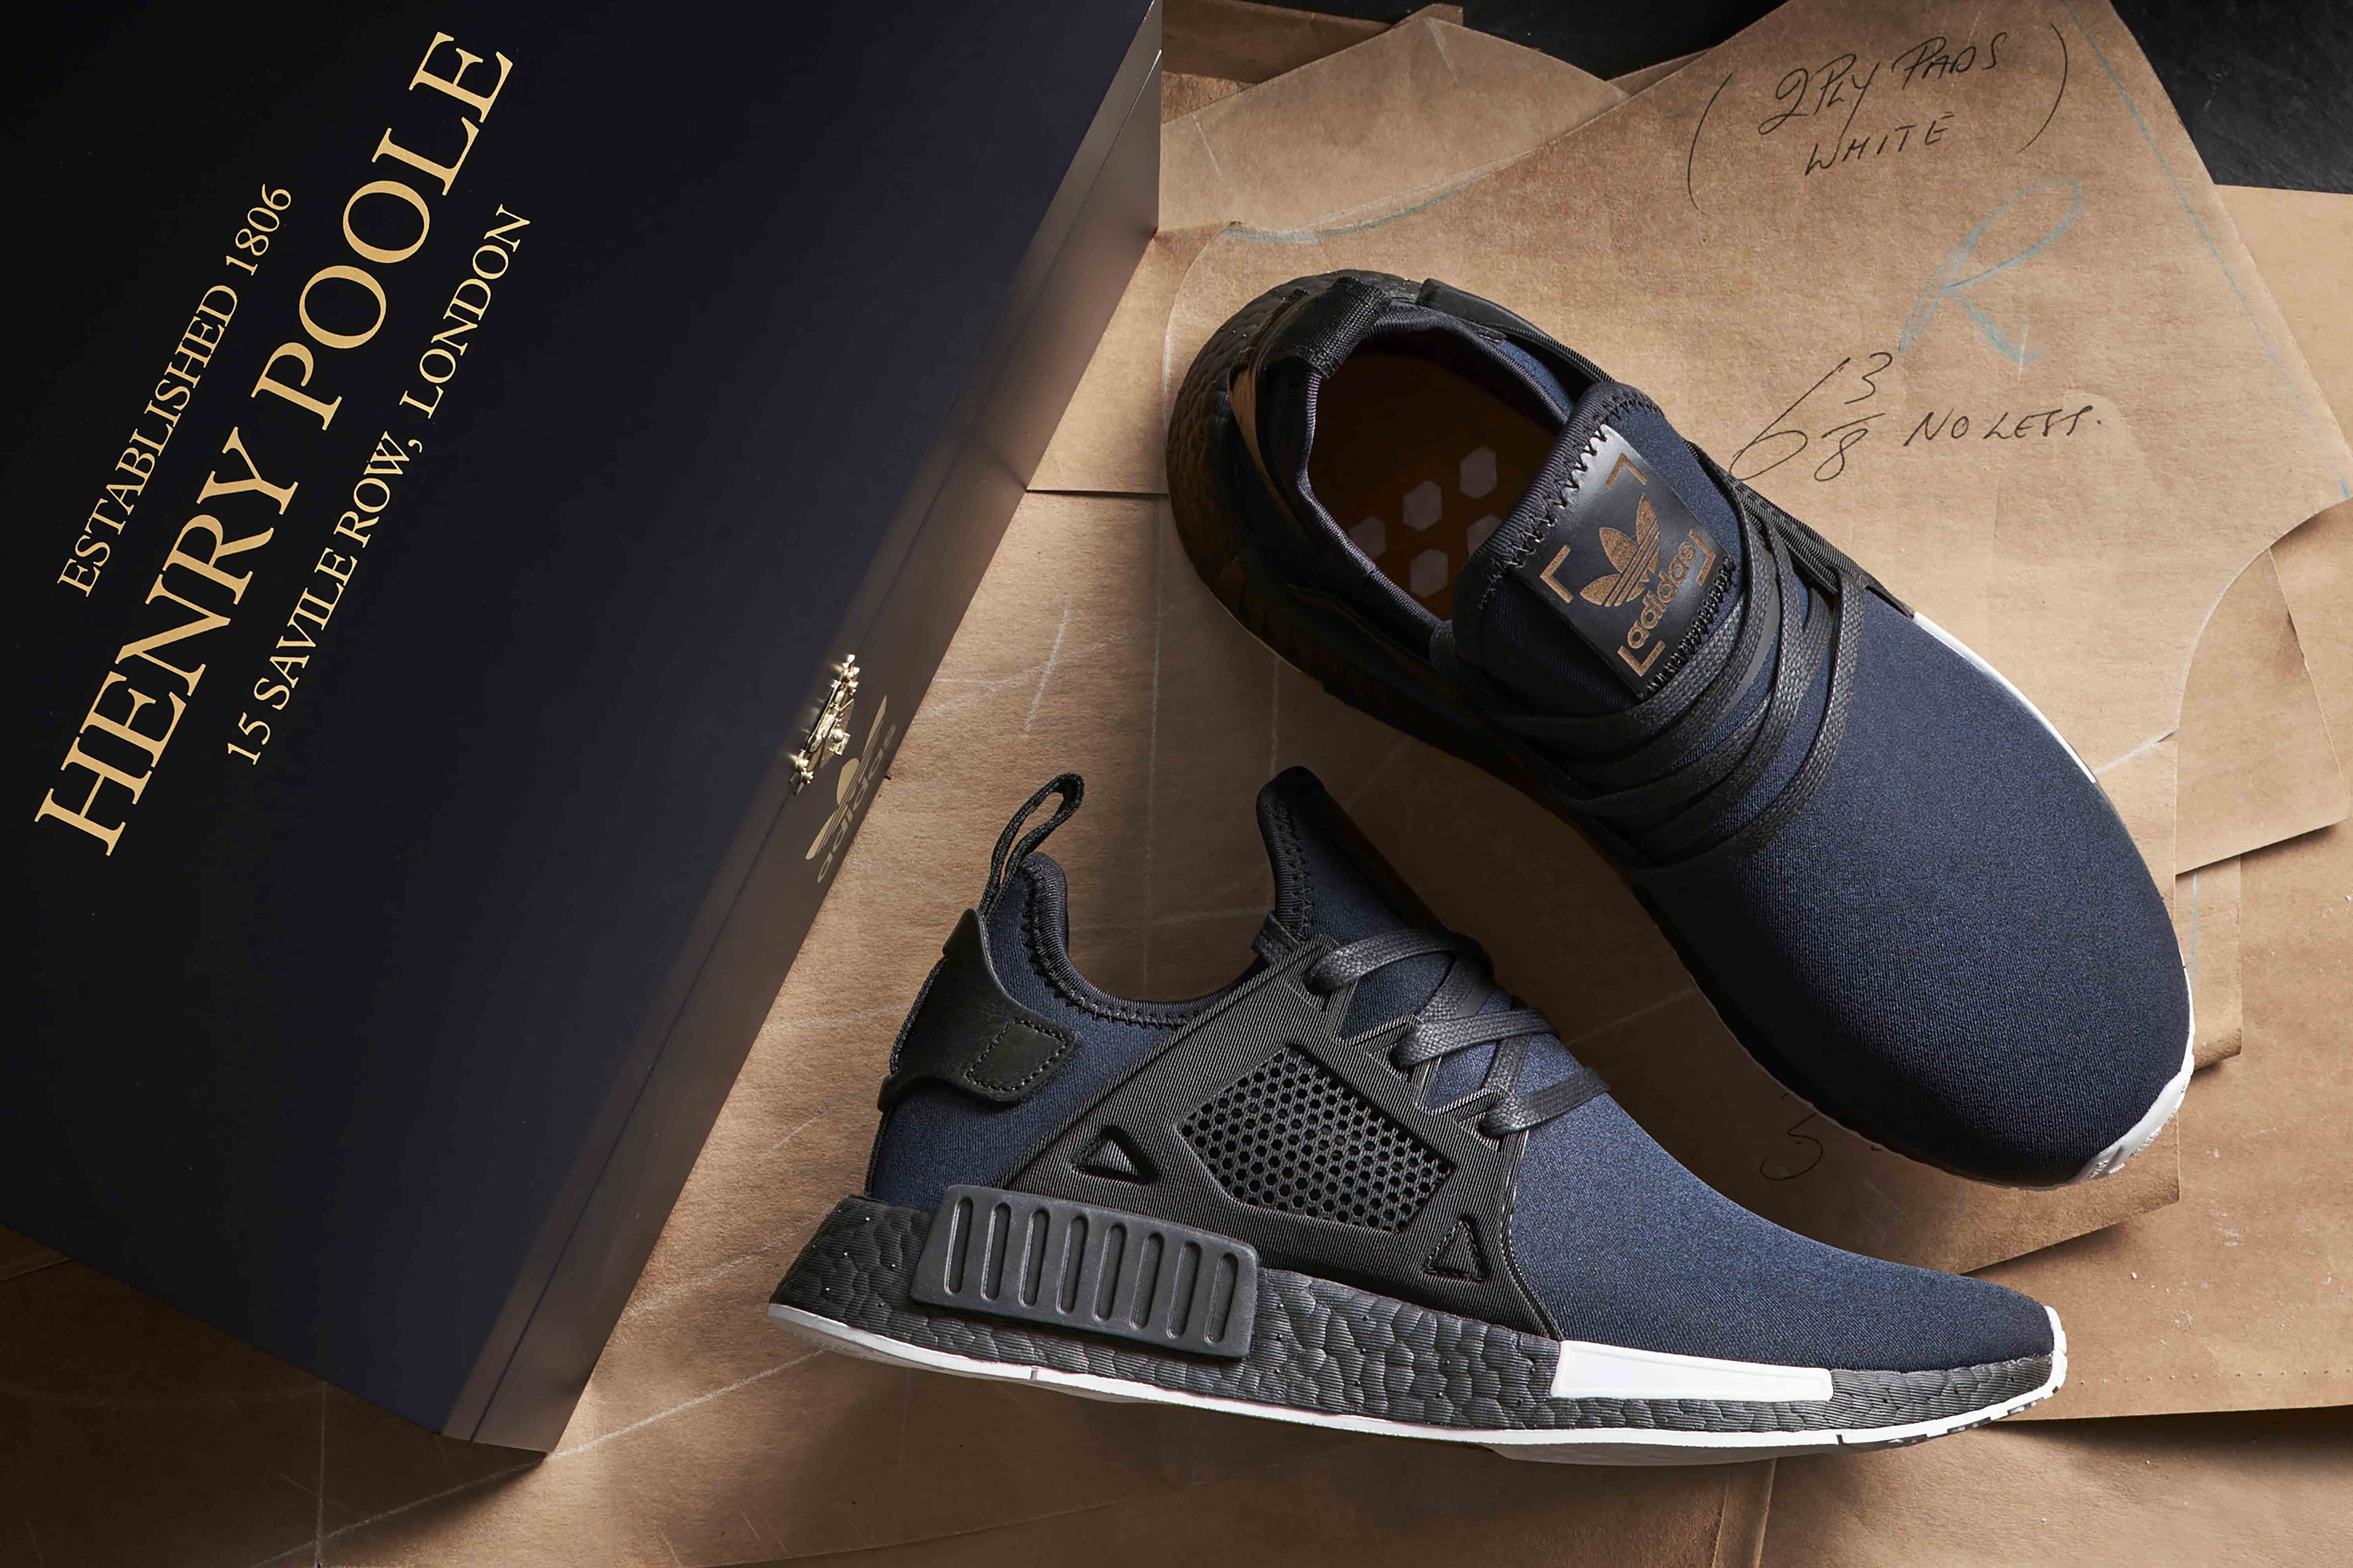 We Are Outlanders ADIDAS ORIGINALS X HENRY POOLE X SIZE? NMD